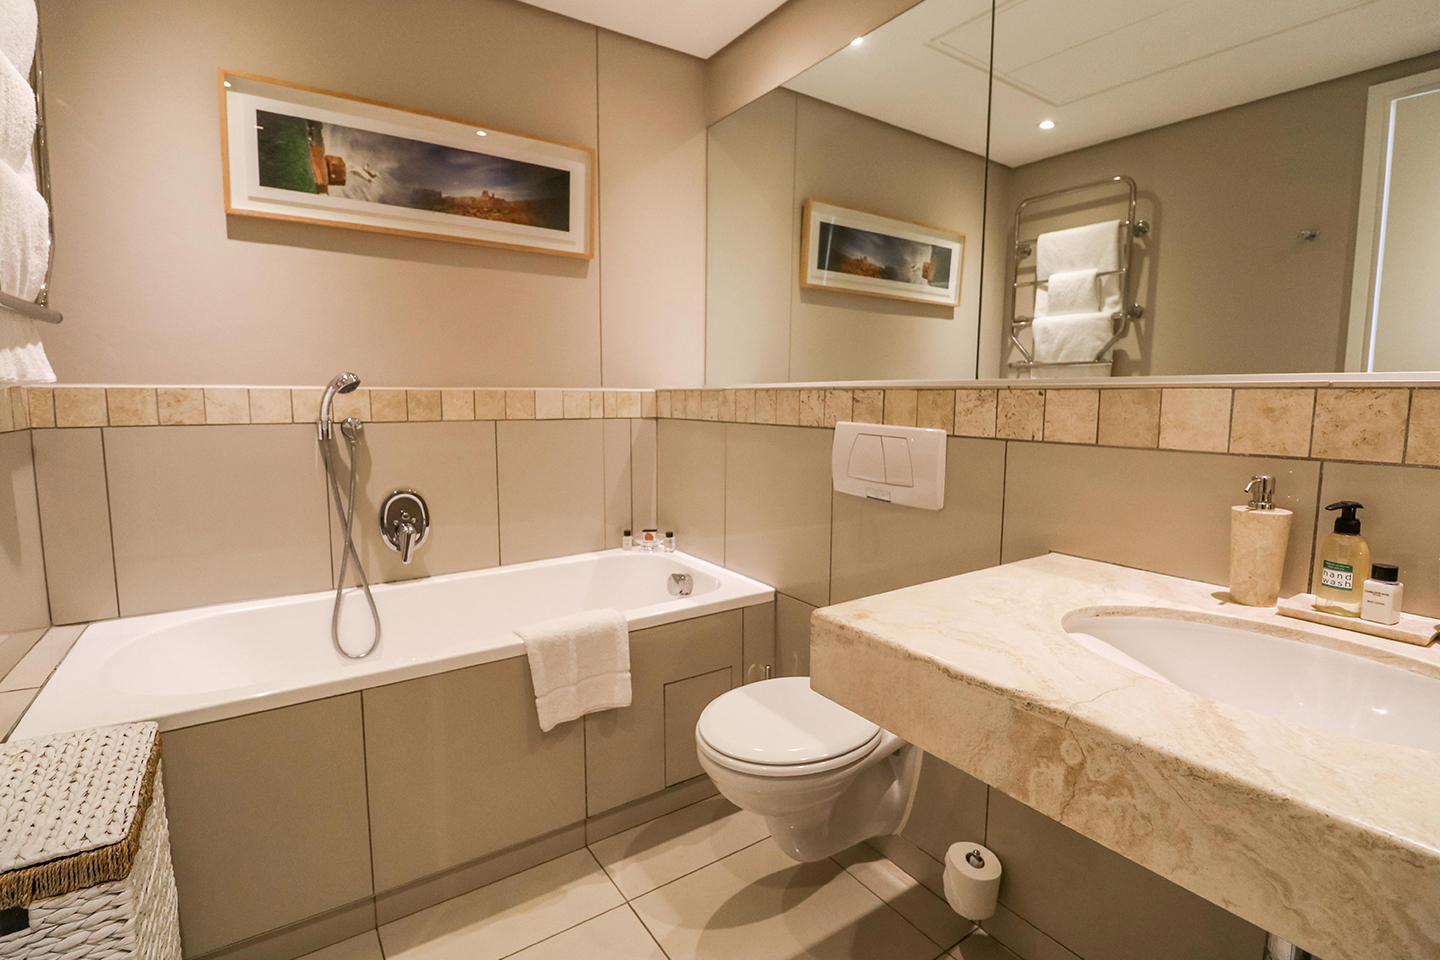 Bathroom at Waterfront Village - Citybase Apartments